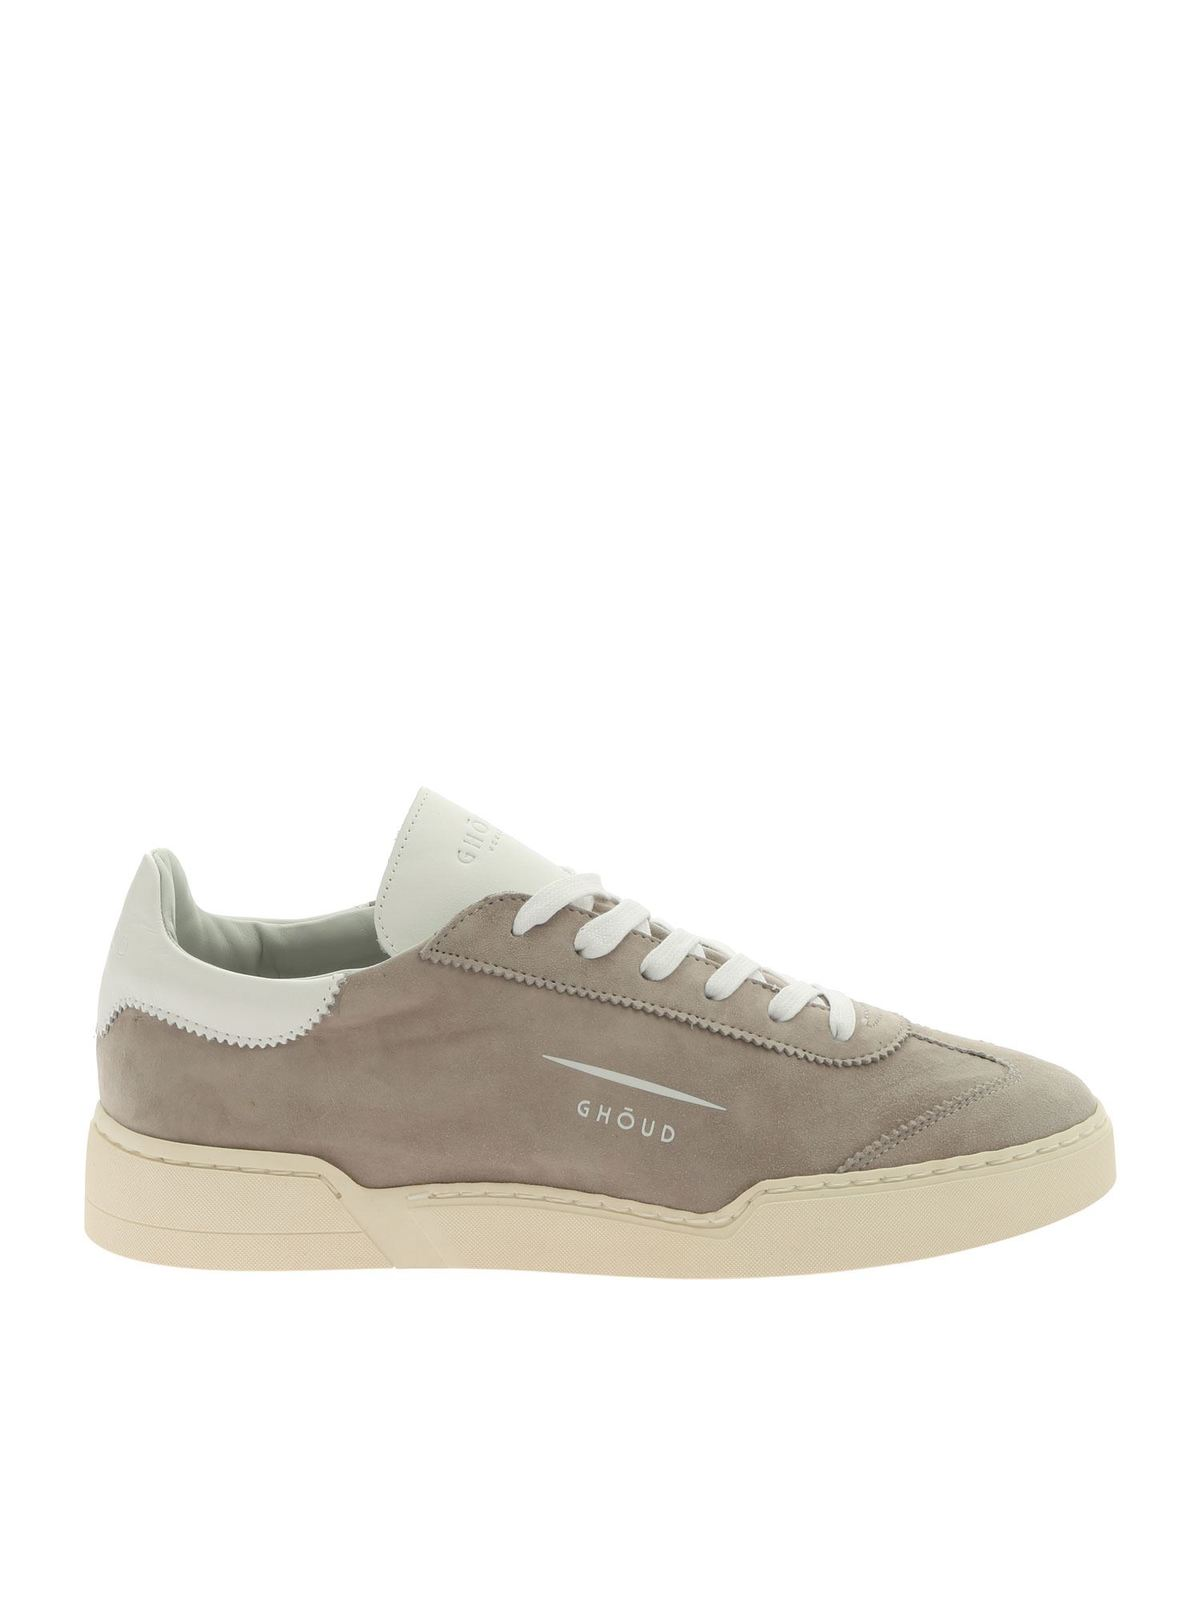 Ghoud Venice Leathers LOB 01 GRAY SNEAKERS IN SUEDE LEATHER